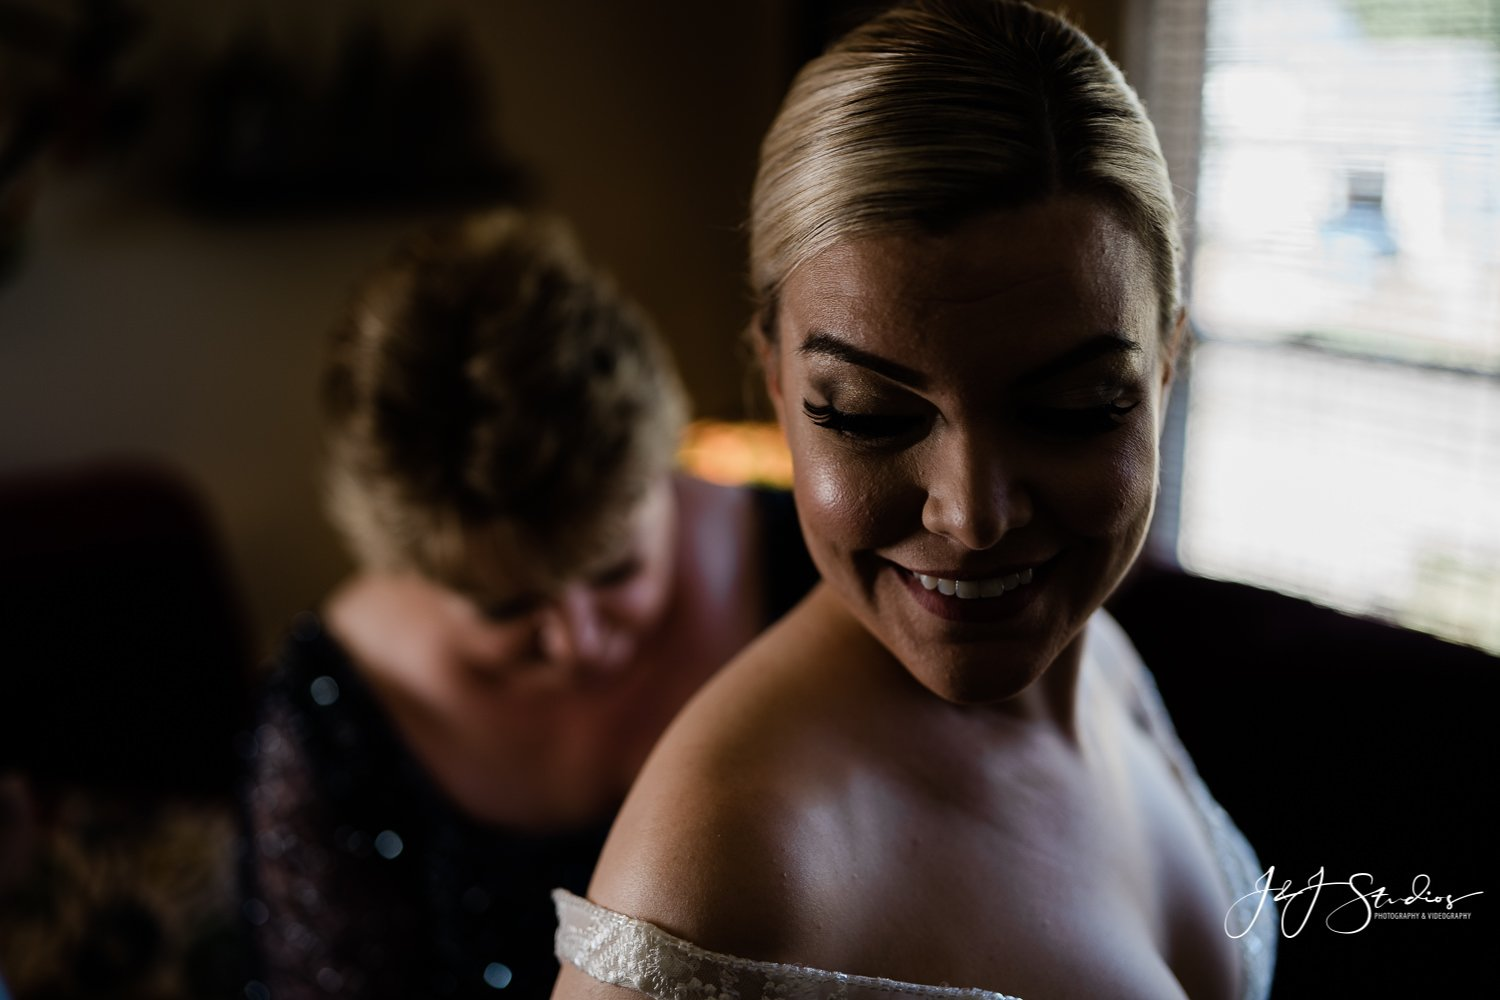 mother of the bride helps bride into dress ramblewood country club wedding photo by J&J Studios